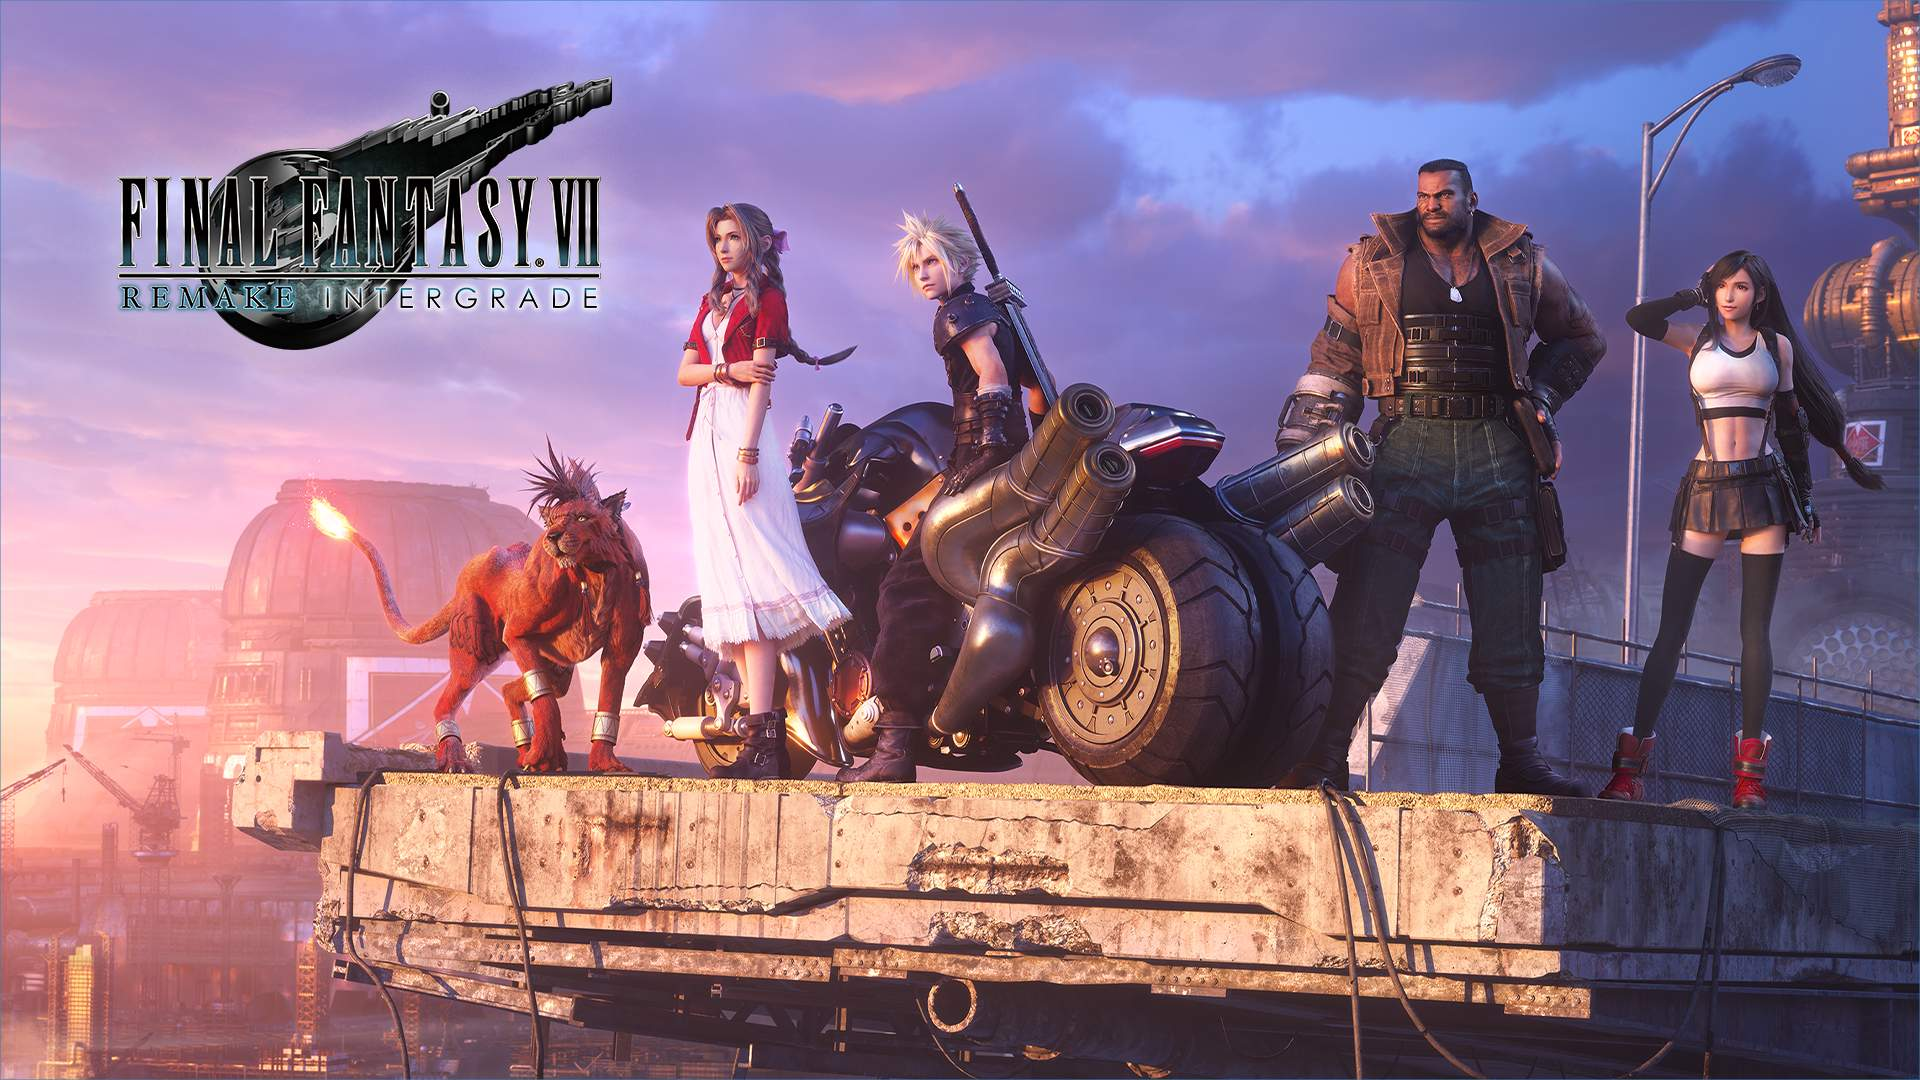 Red XIII, Aerith, Cloud, Barret, and Tifa in FINAL FANTASY VII REMAKE INTERGRADE